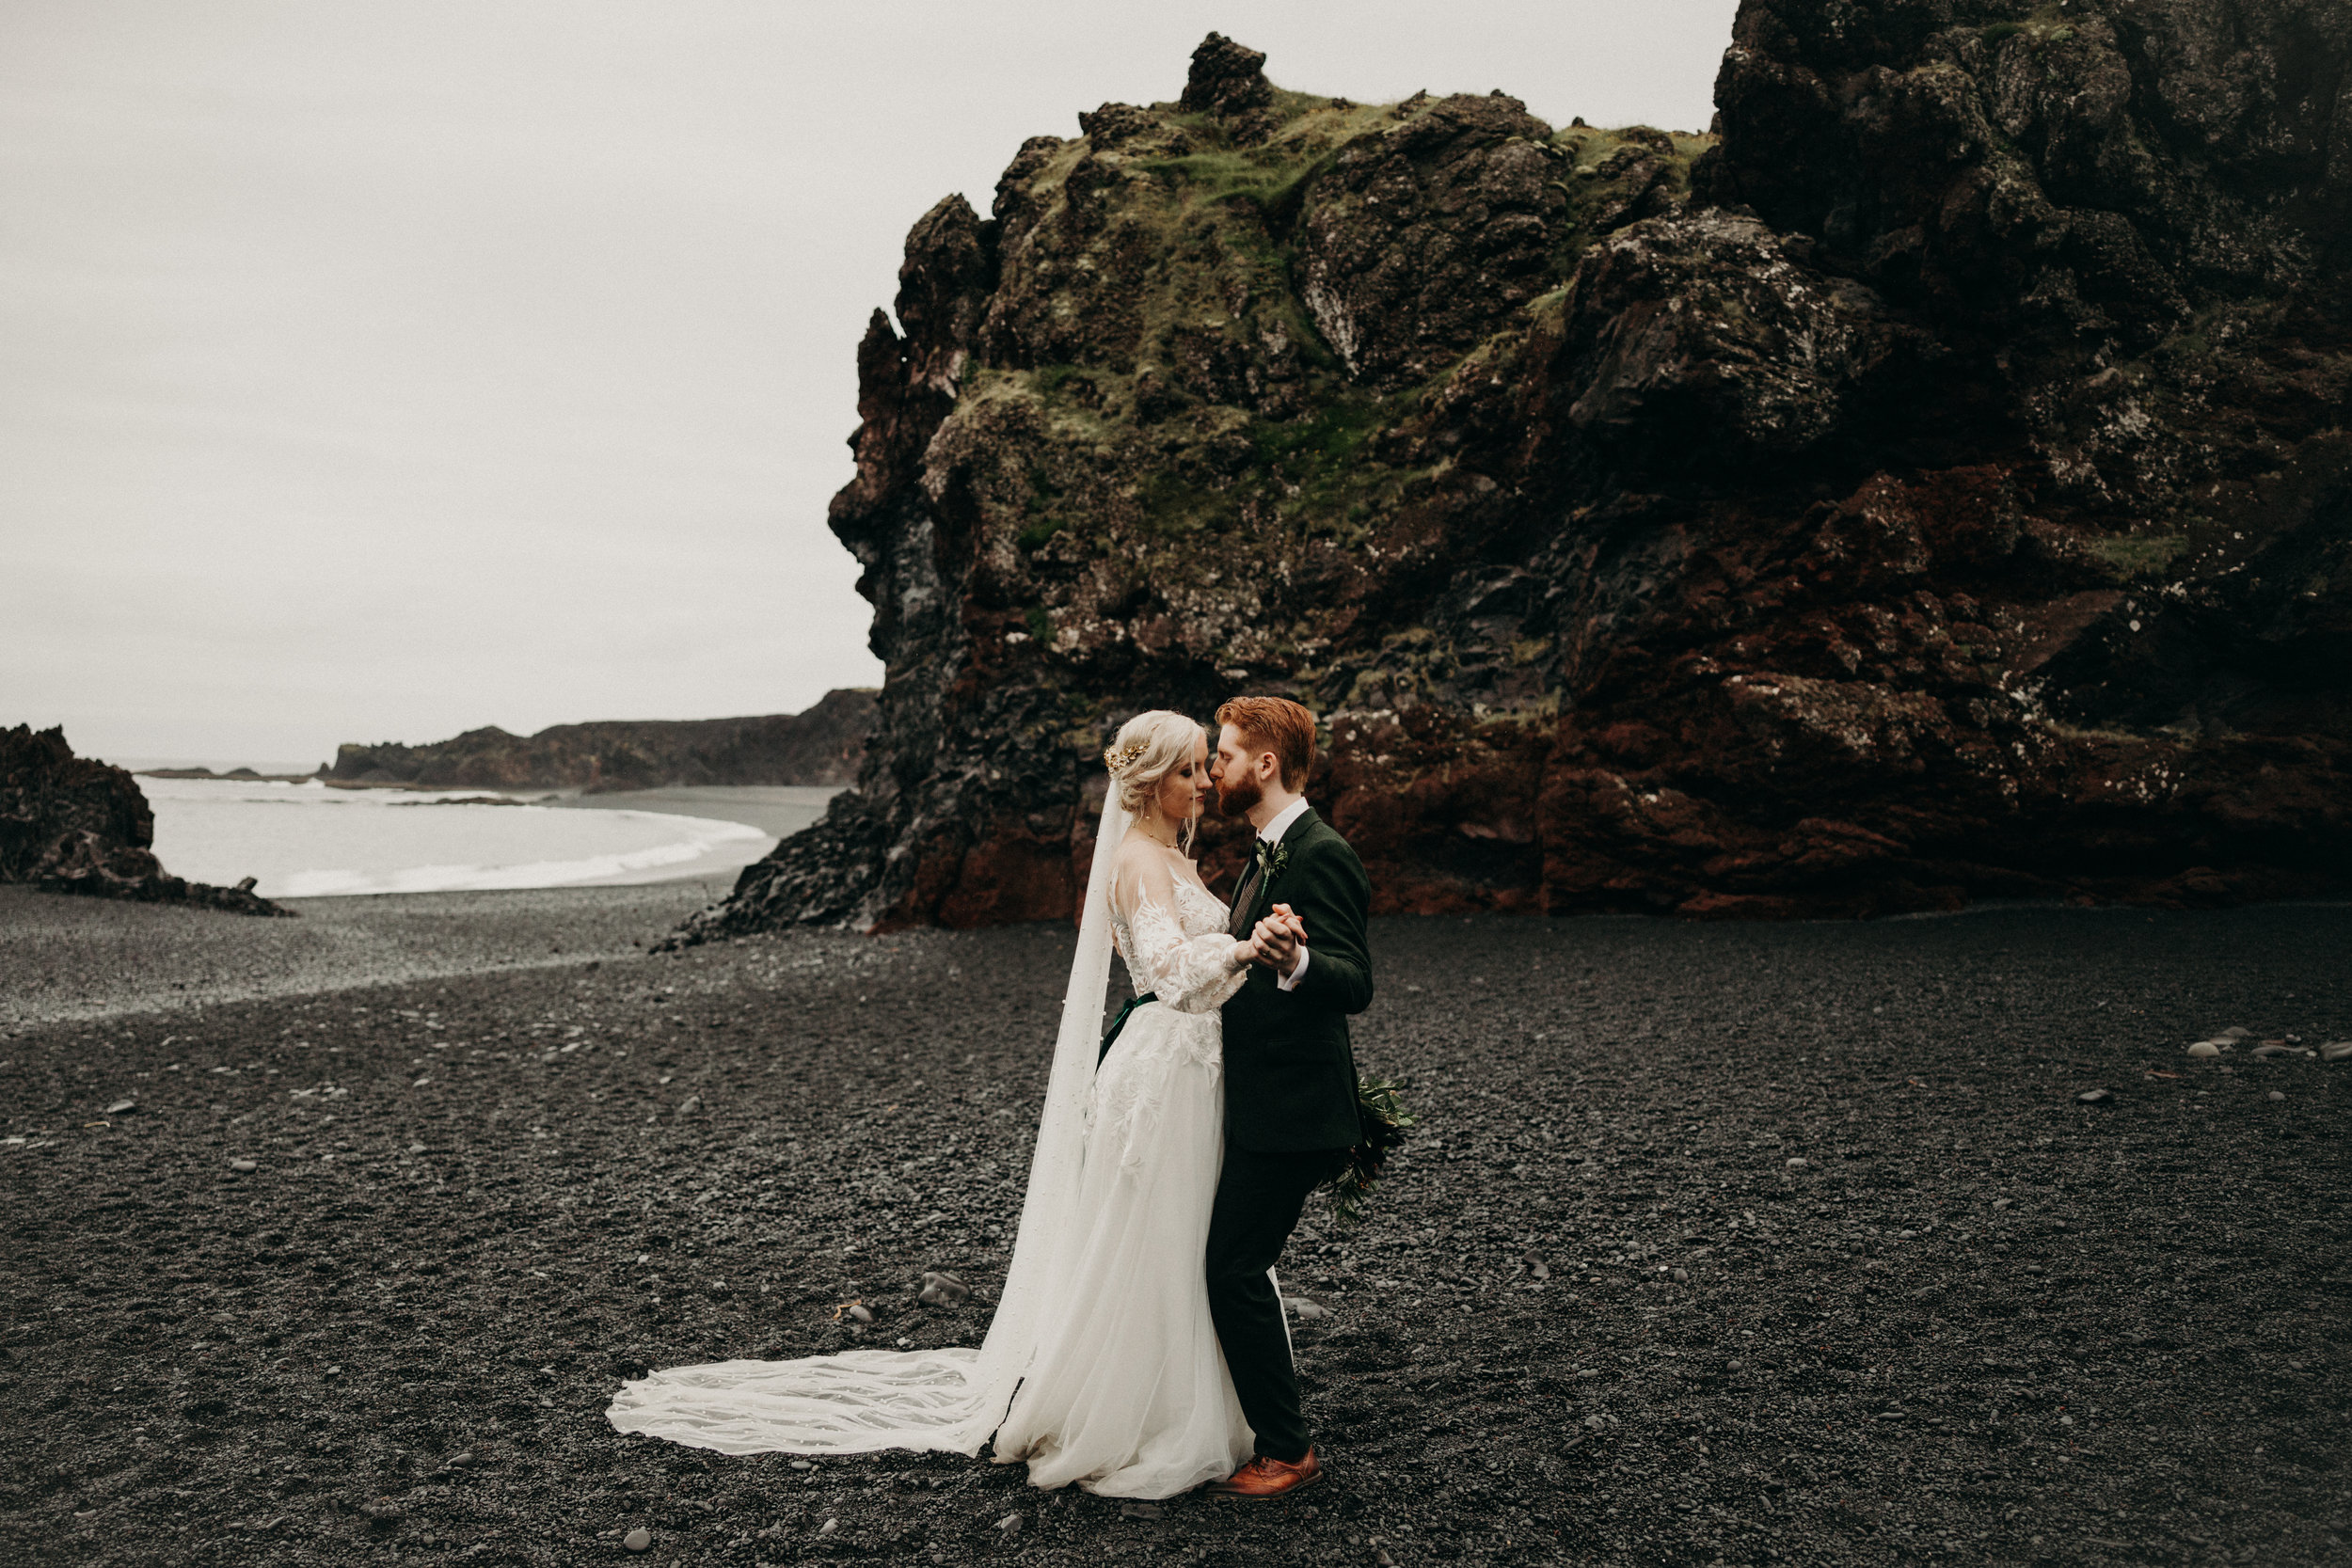 ALINA & THORDVARDUR - ICELAND WEDDING